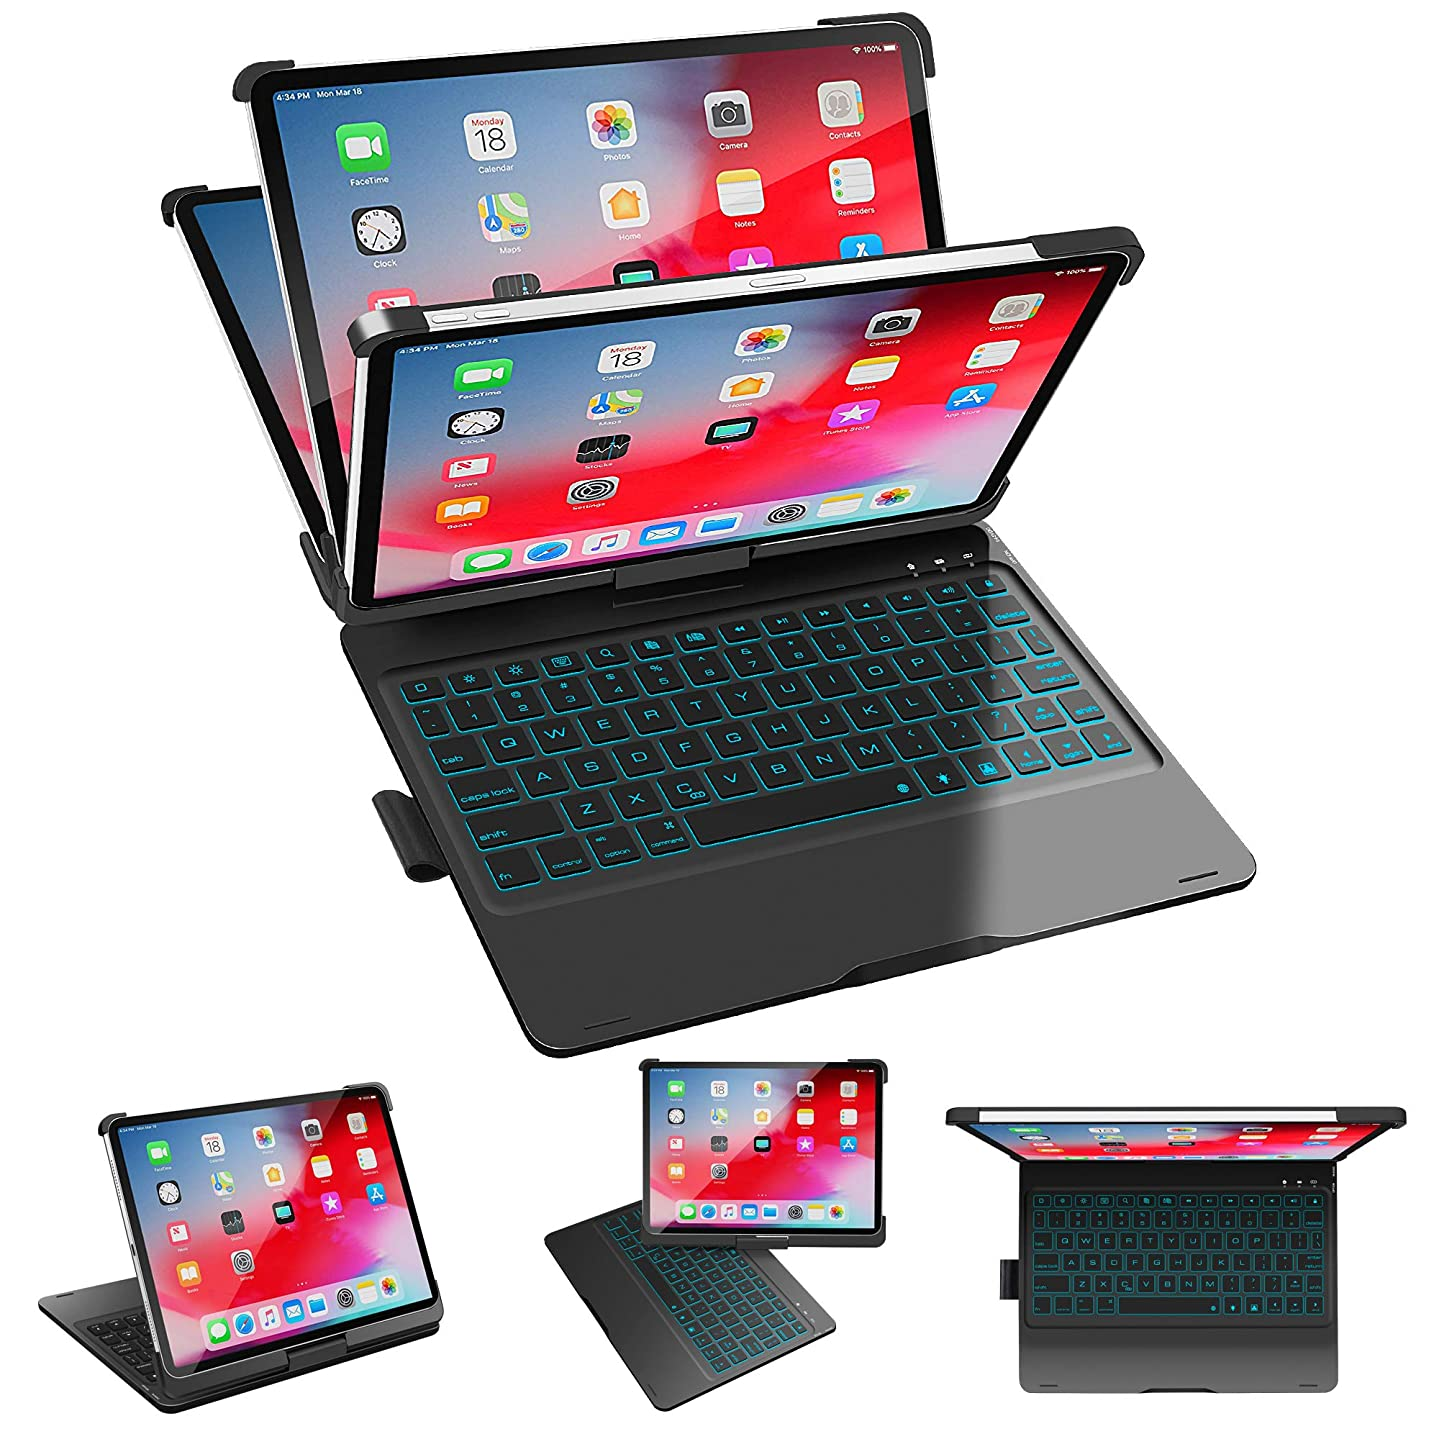 SZILBZ iPad Pro 11 Keyboard Case 2018,Wireless Bluetooth Keyboard,360 Rotatable and 180 Flip,Thin & Light,Auto Sleep/Wake up,7 Colors Backlight【Support Apple Pencil 2nd Gen Charging】 (Black)